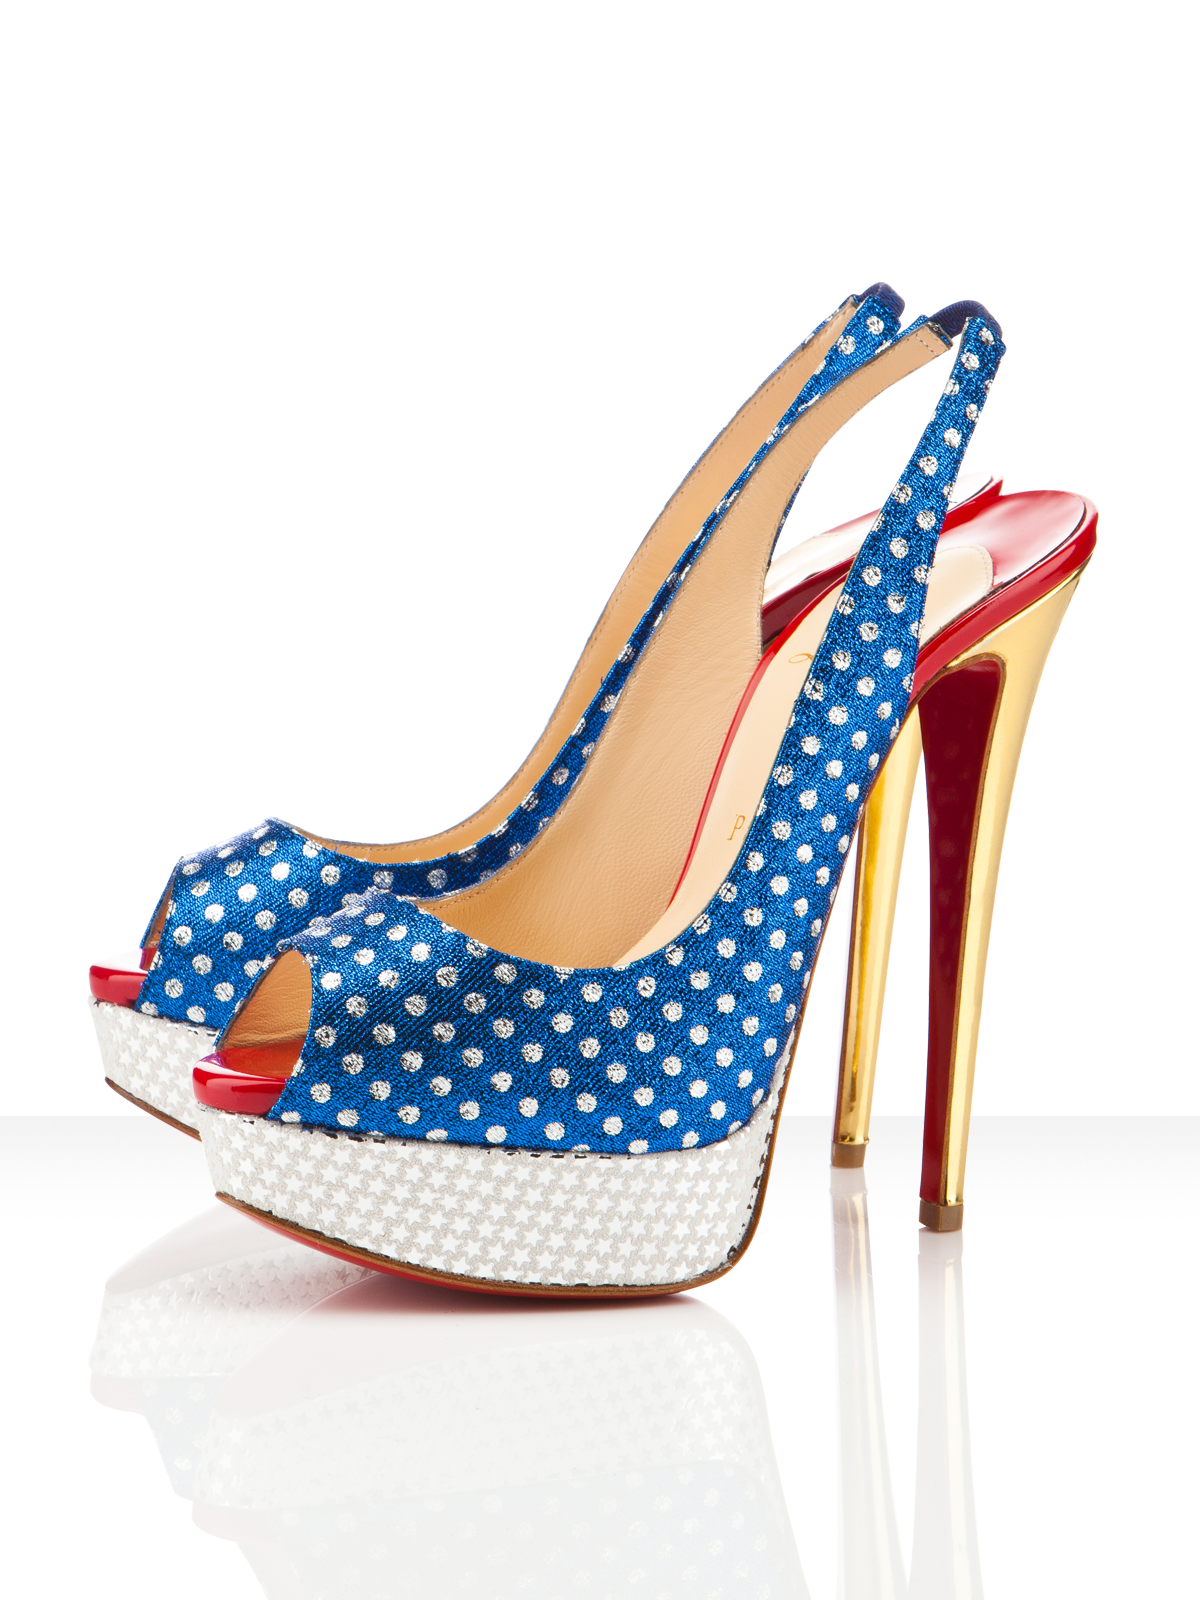 Christian Louboutin Miss America - Red, White and Blue